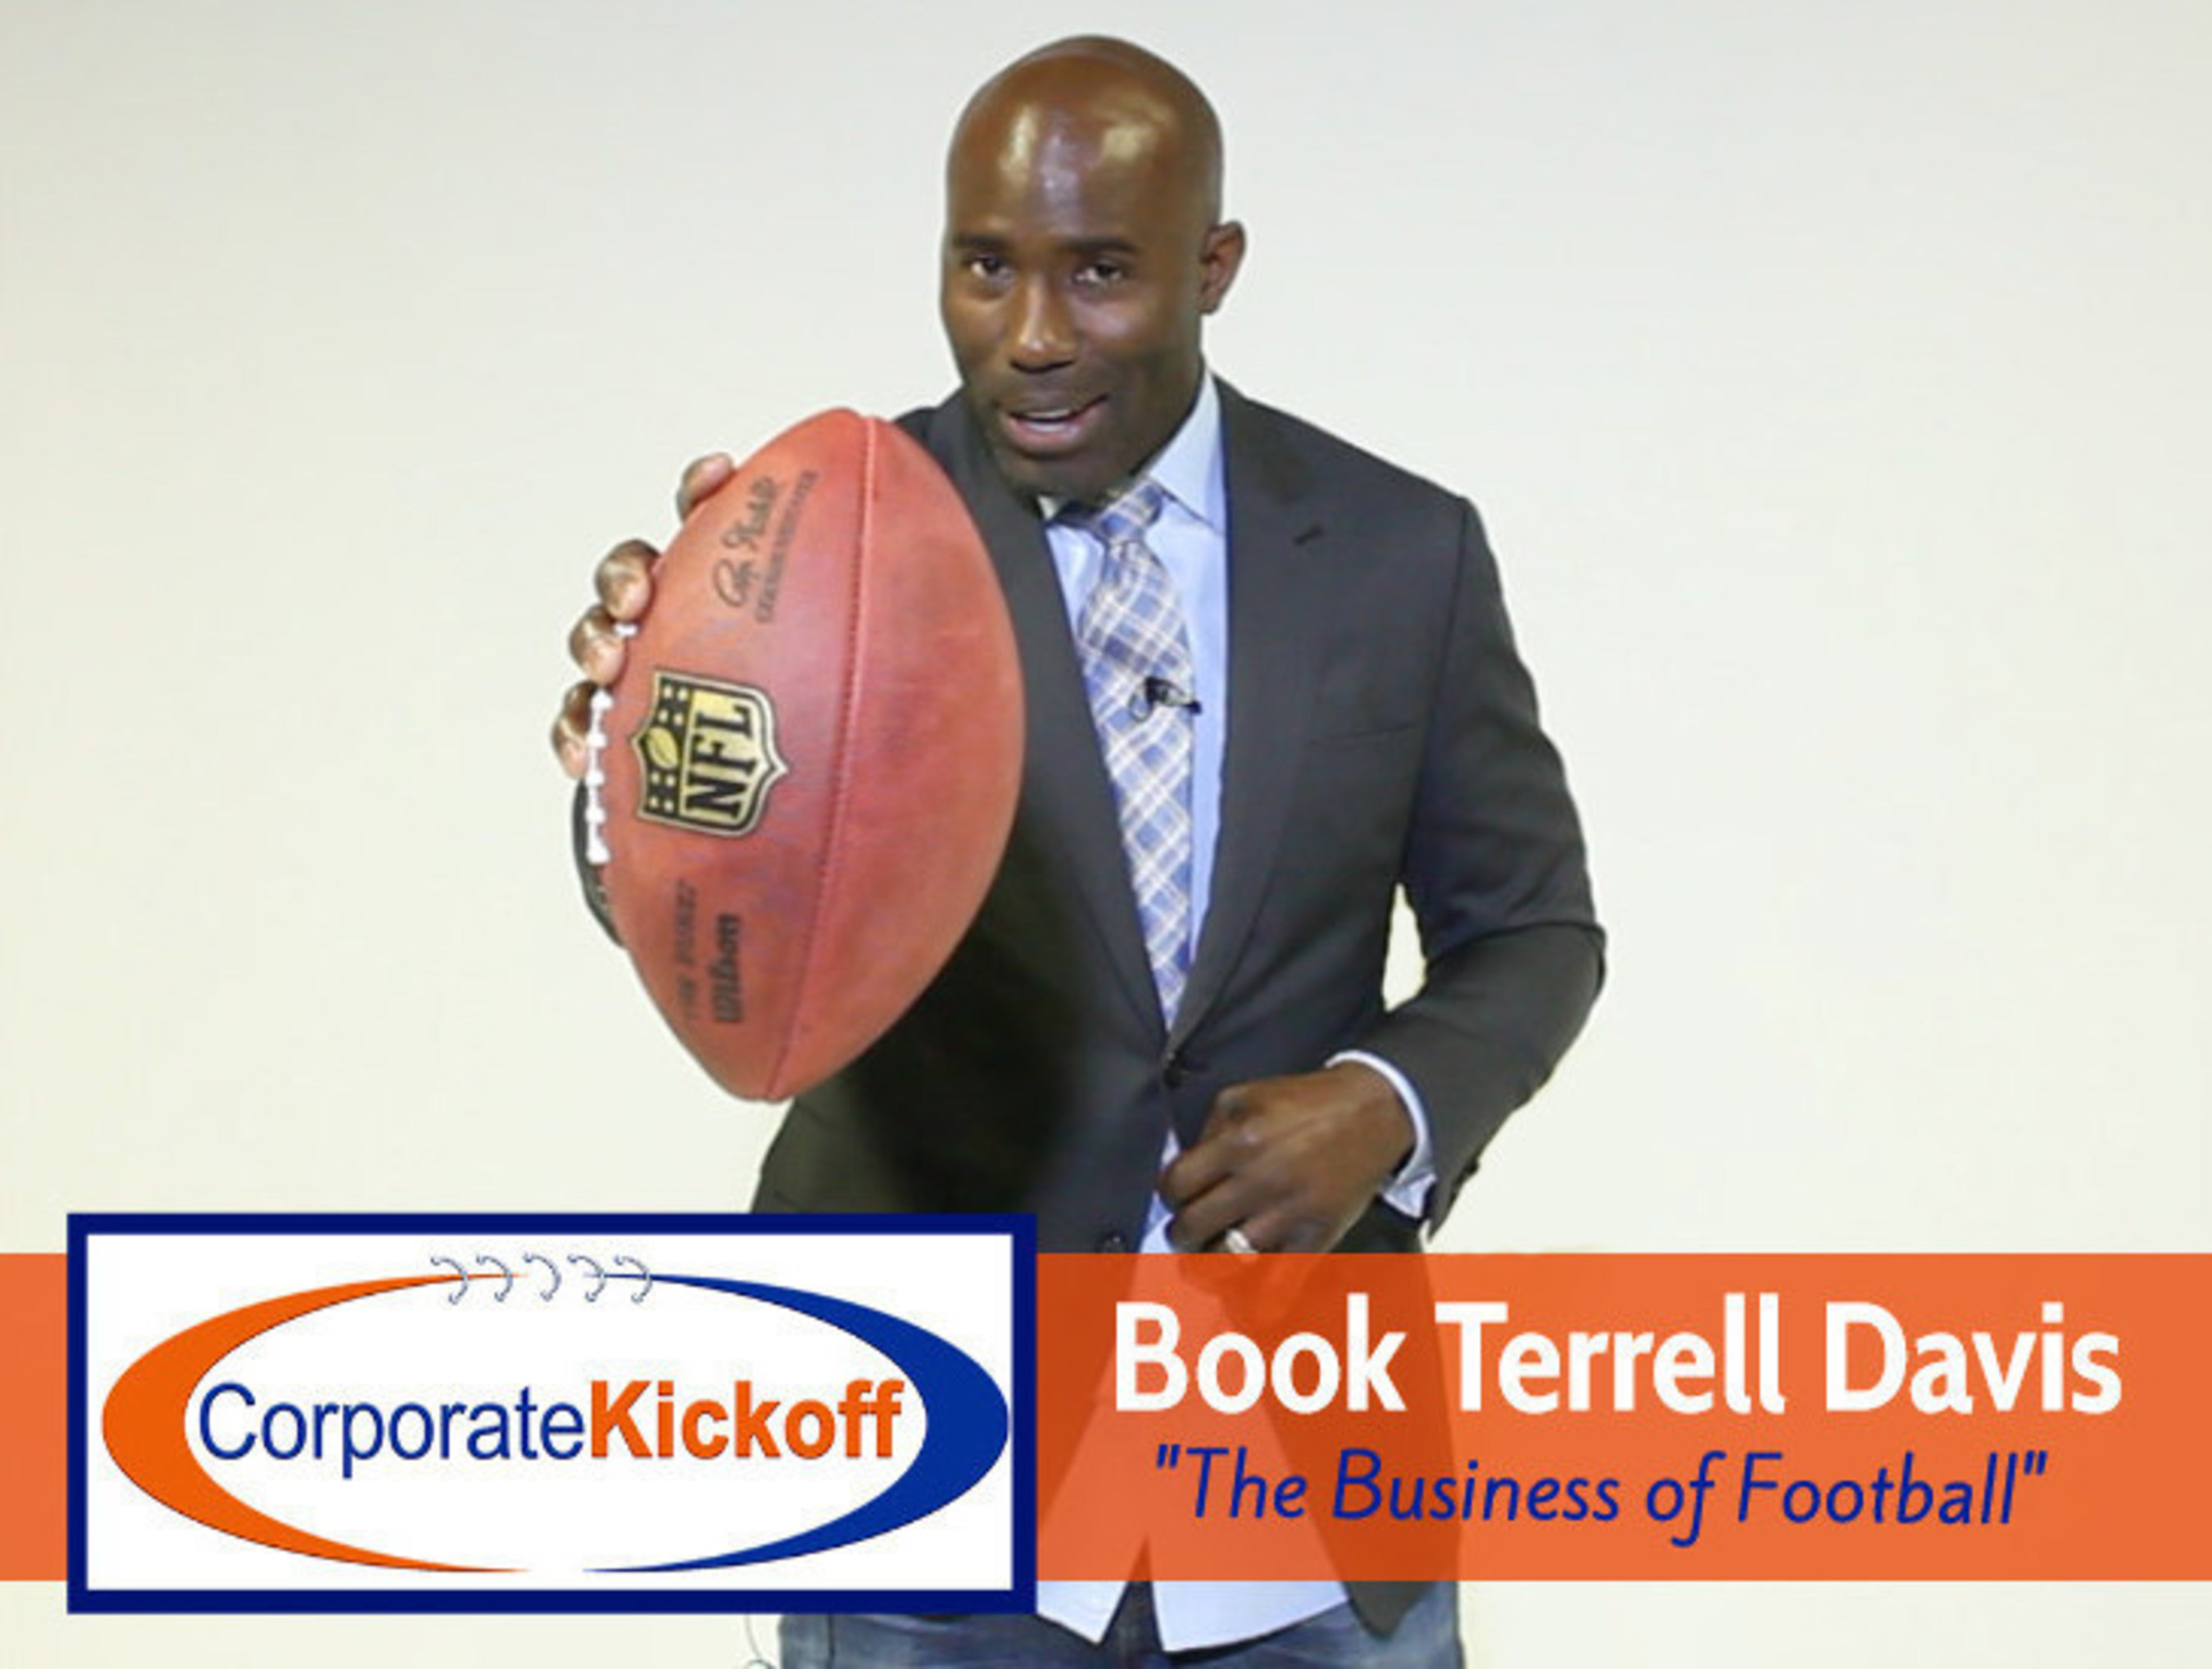 Book Terrell Davis for The Business of Football!